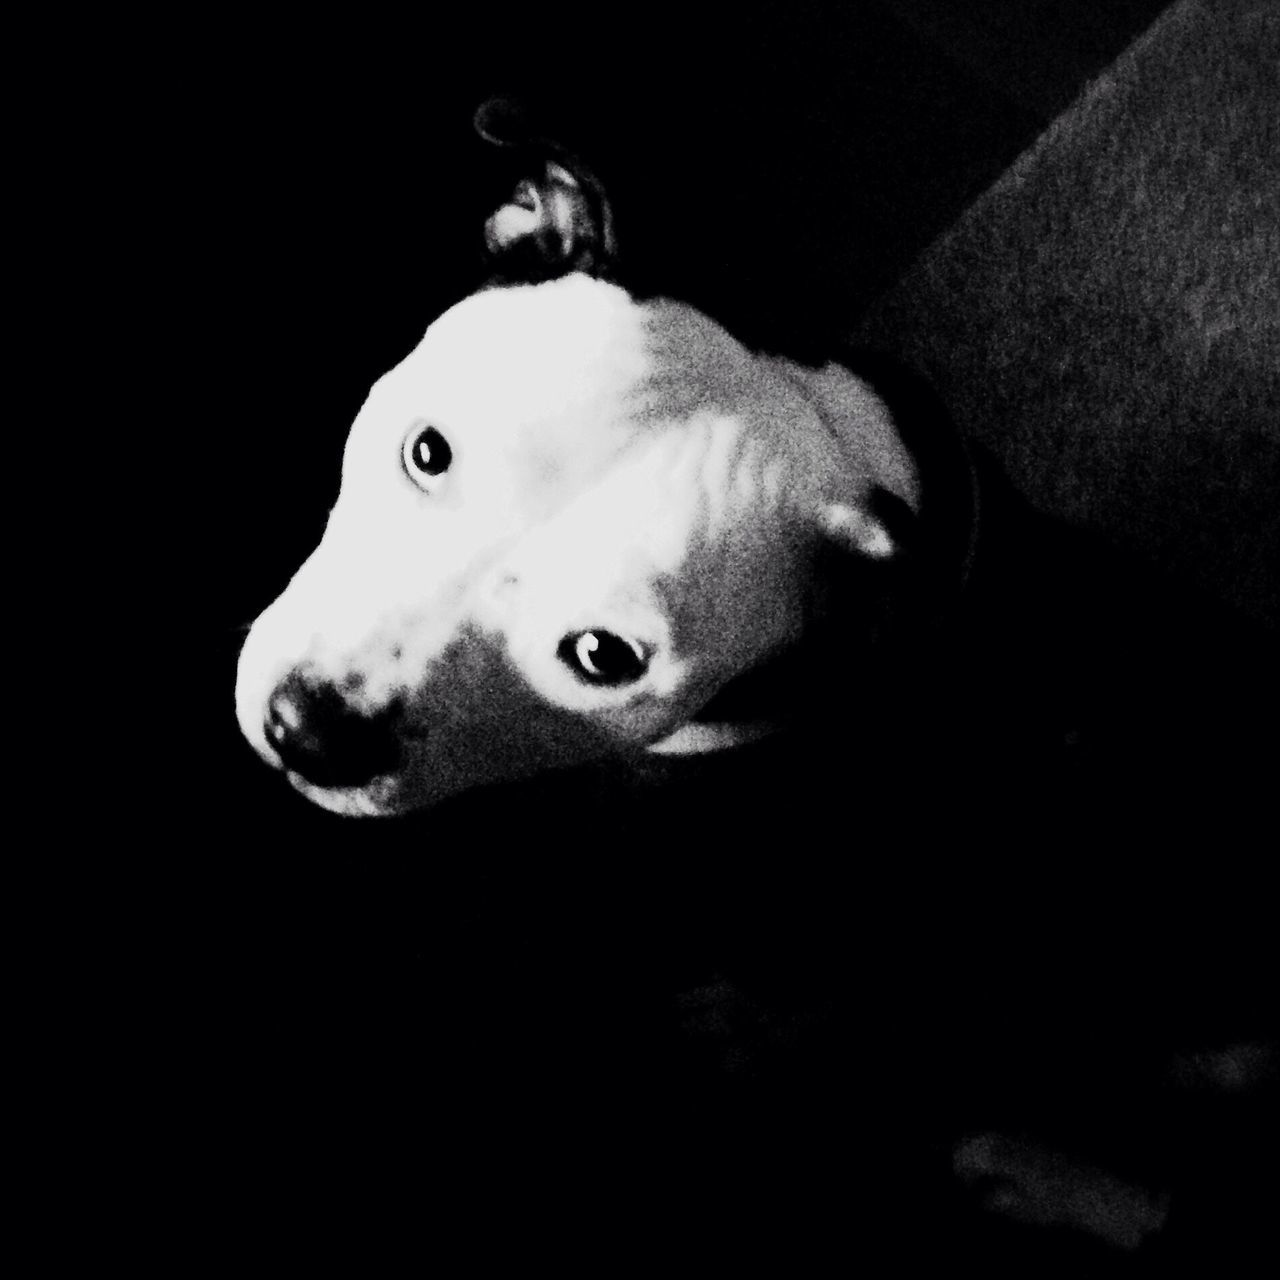 dog, pets, one animal, domestic animals, animal themes, mammal, indoors, animal head, looking at camera, black background, portrait, pit bull terrier, close-up, no people, beagle, day